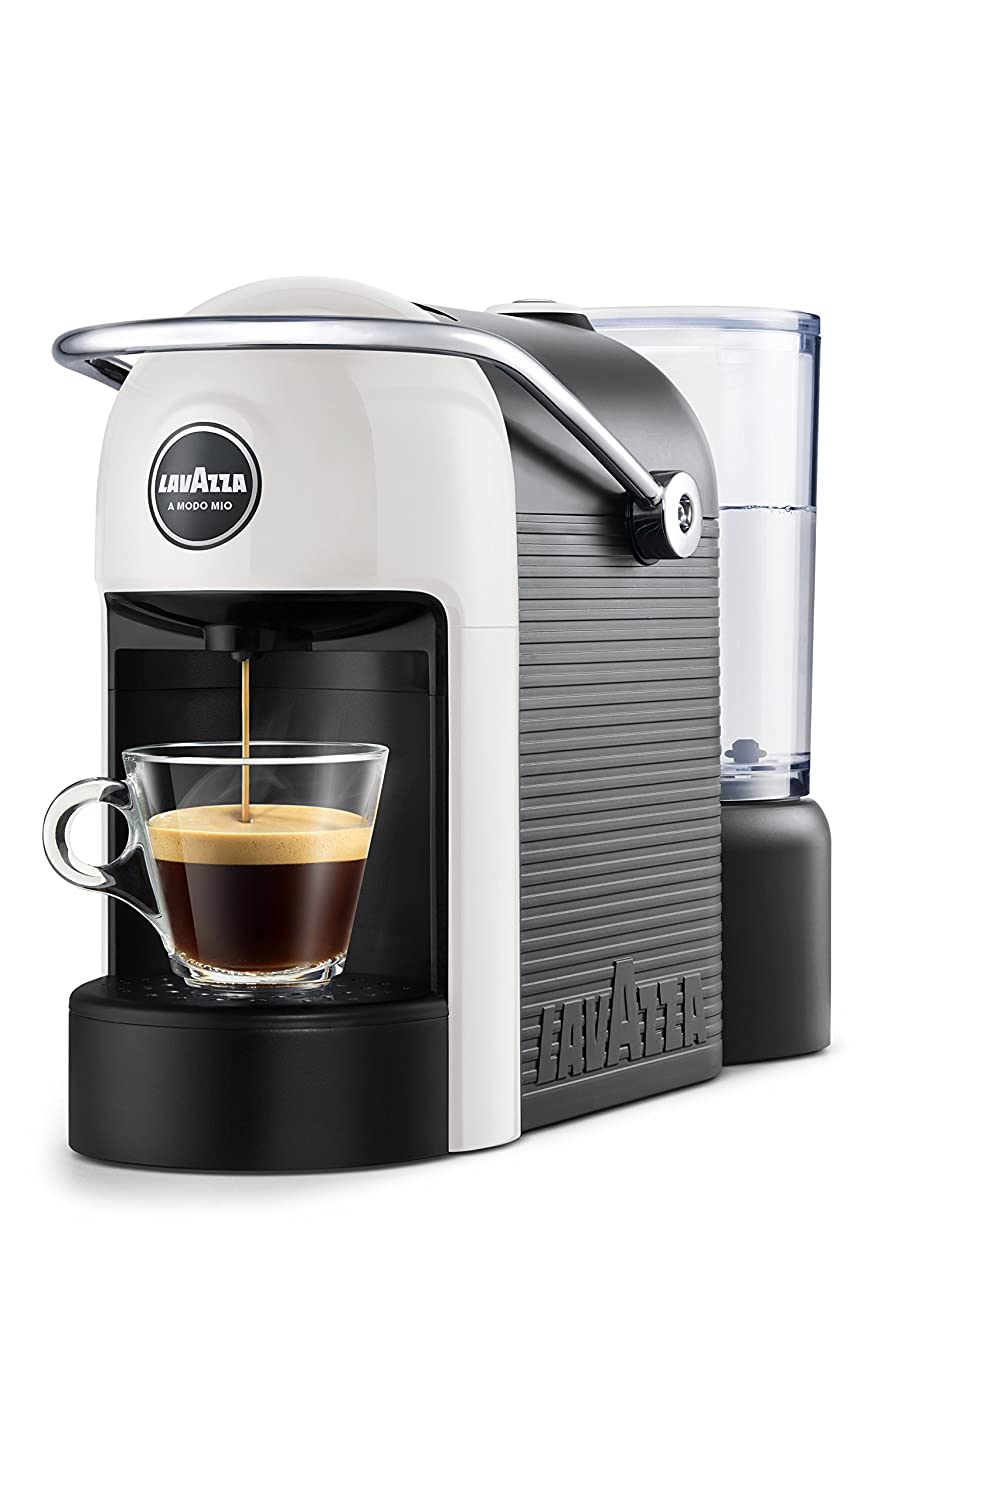 lavazza a modo mio jolie kapsel kaffeemaschine 1250 w 10 bar jolie wei ebay. Black Bedroom Furniture Sets. Home Design Ideas